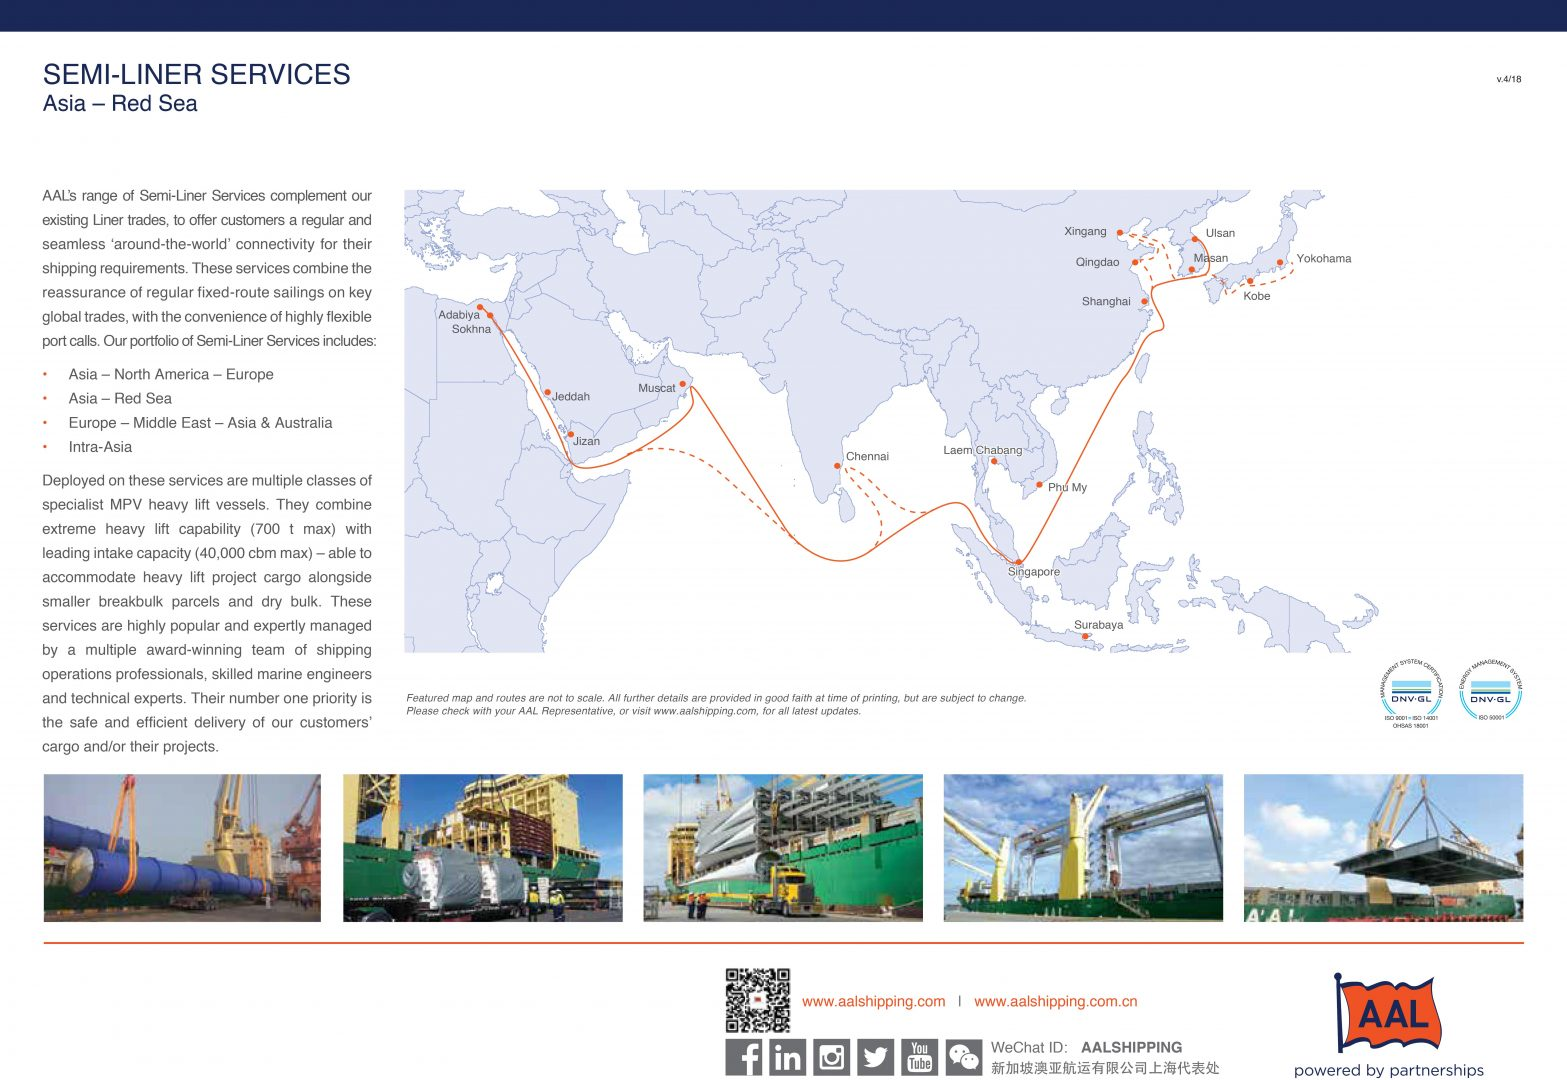 ASIA – RED SEA SEMI-LINER SERVICE ROUTE MAP